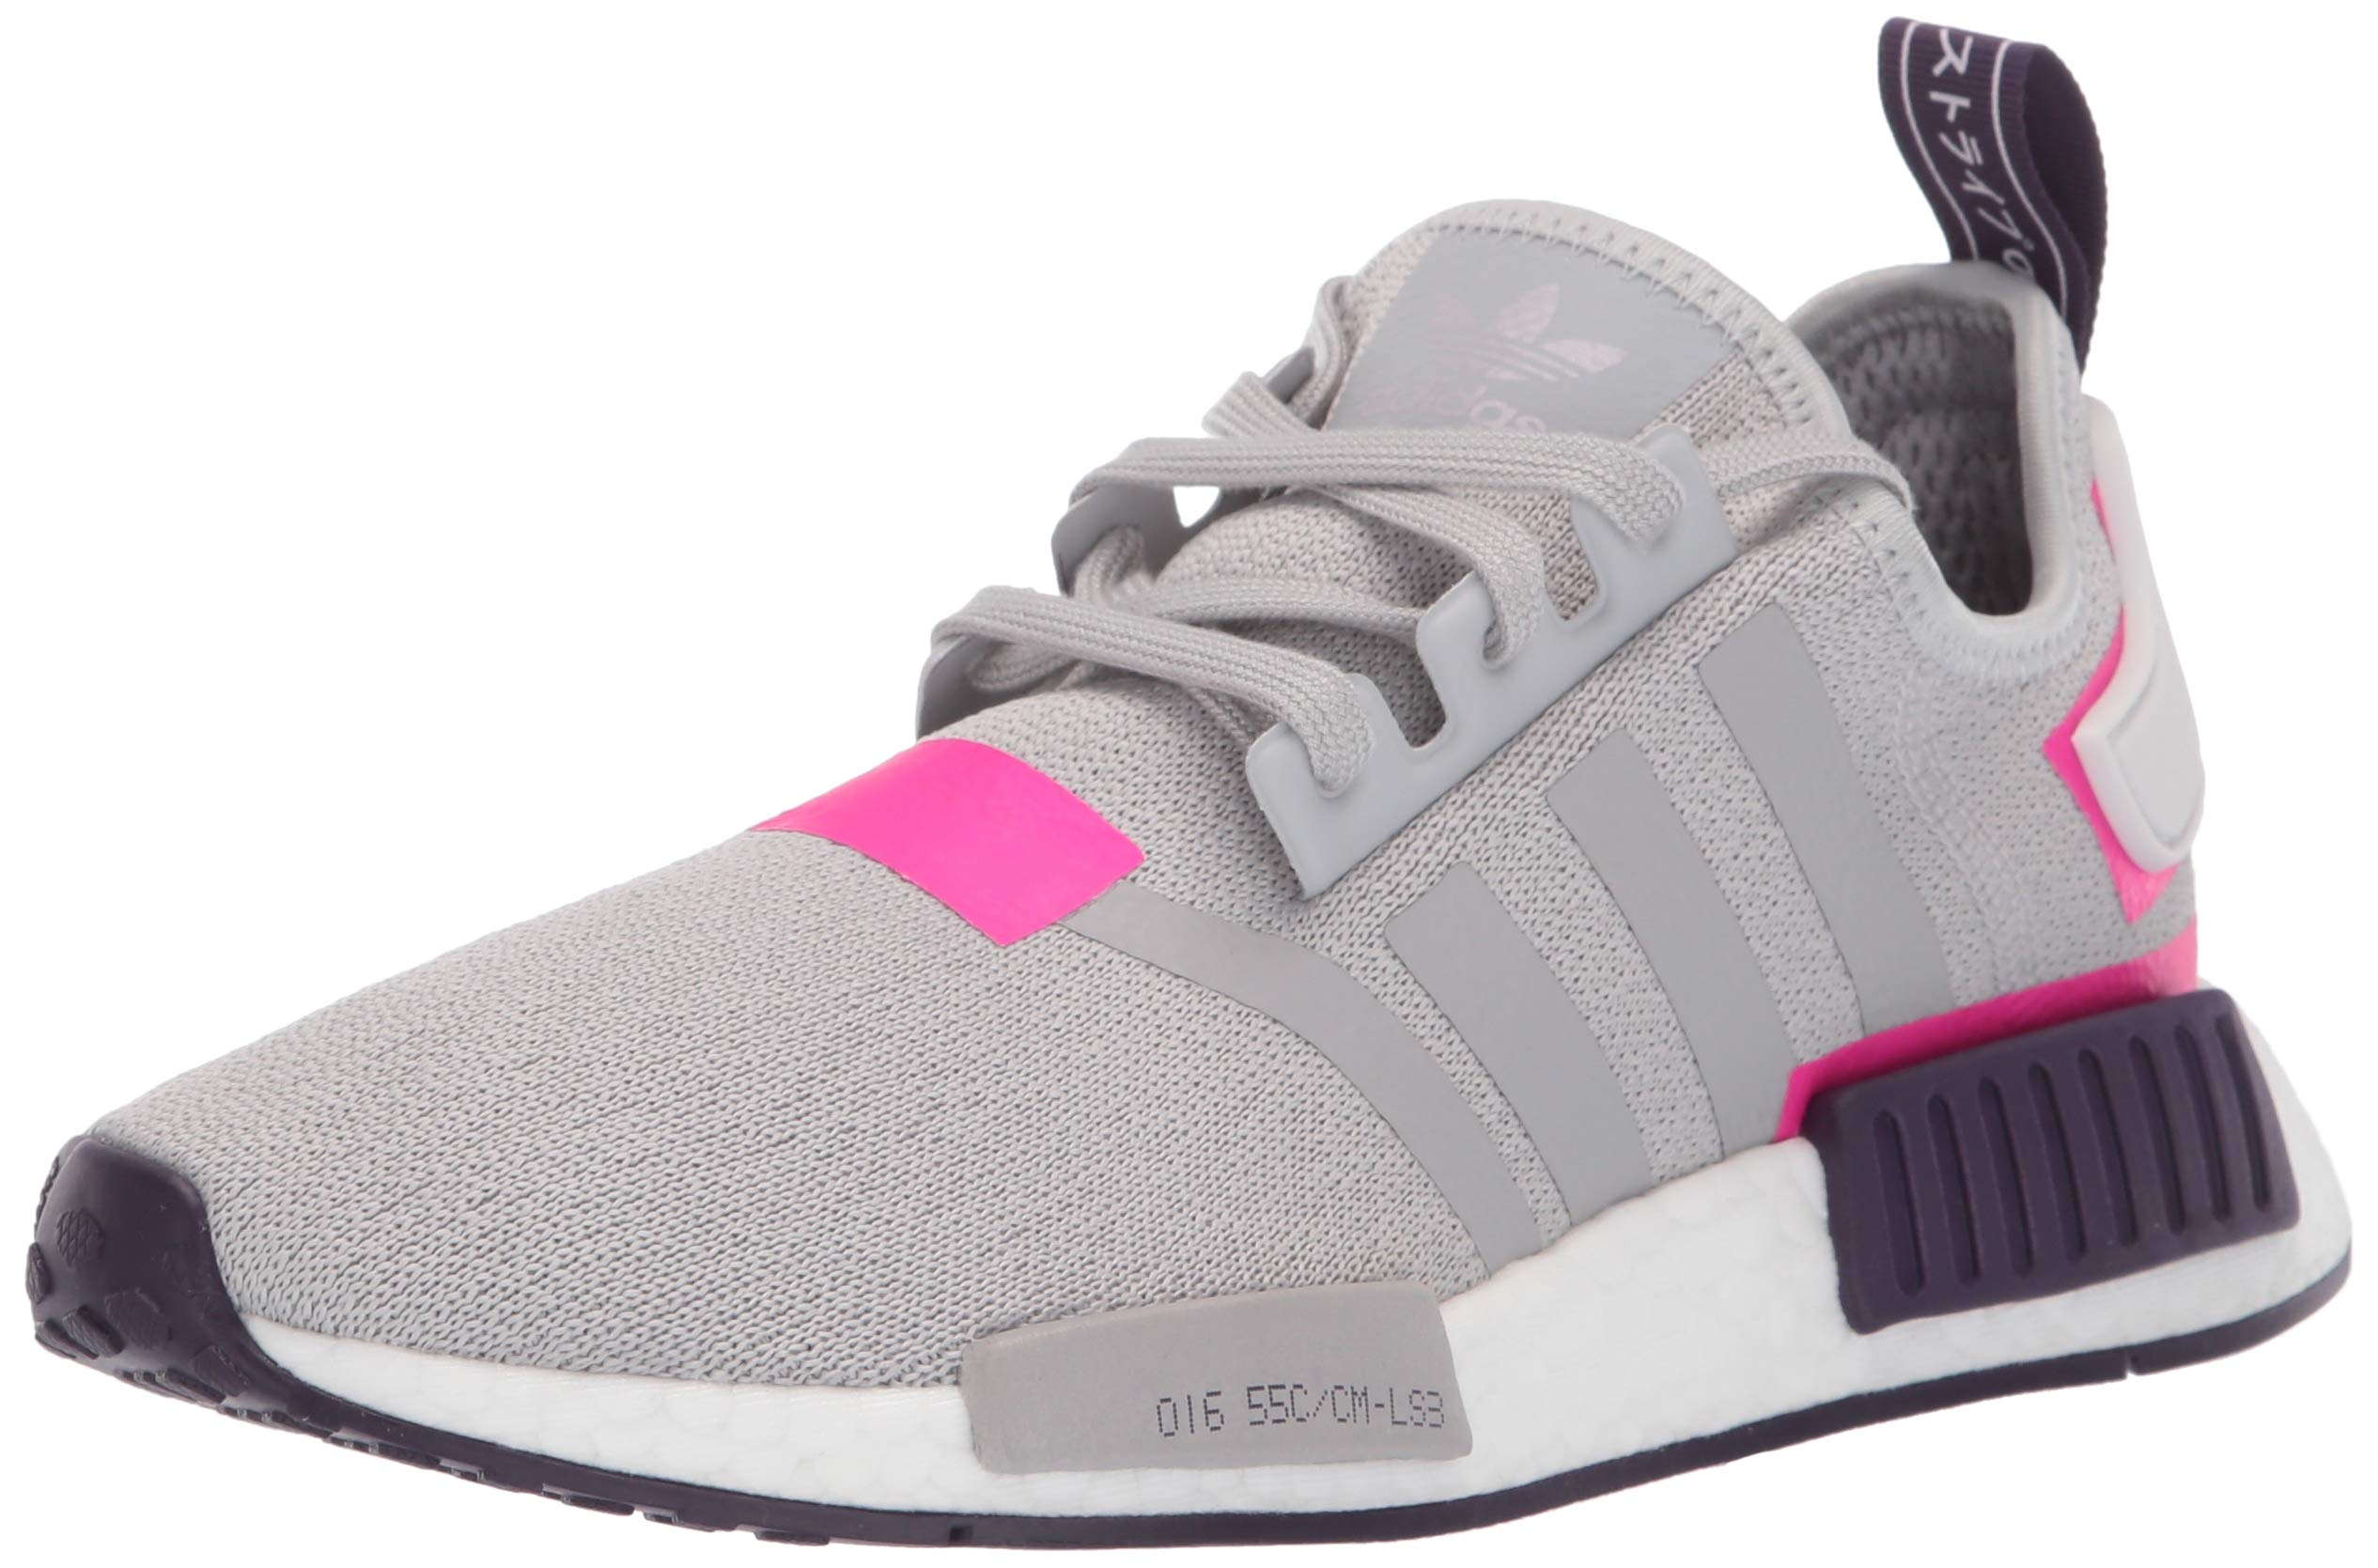 adidas Originals Women's NMD_R1 Running Shoe, Grey/Shock Pink, 5 M US